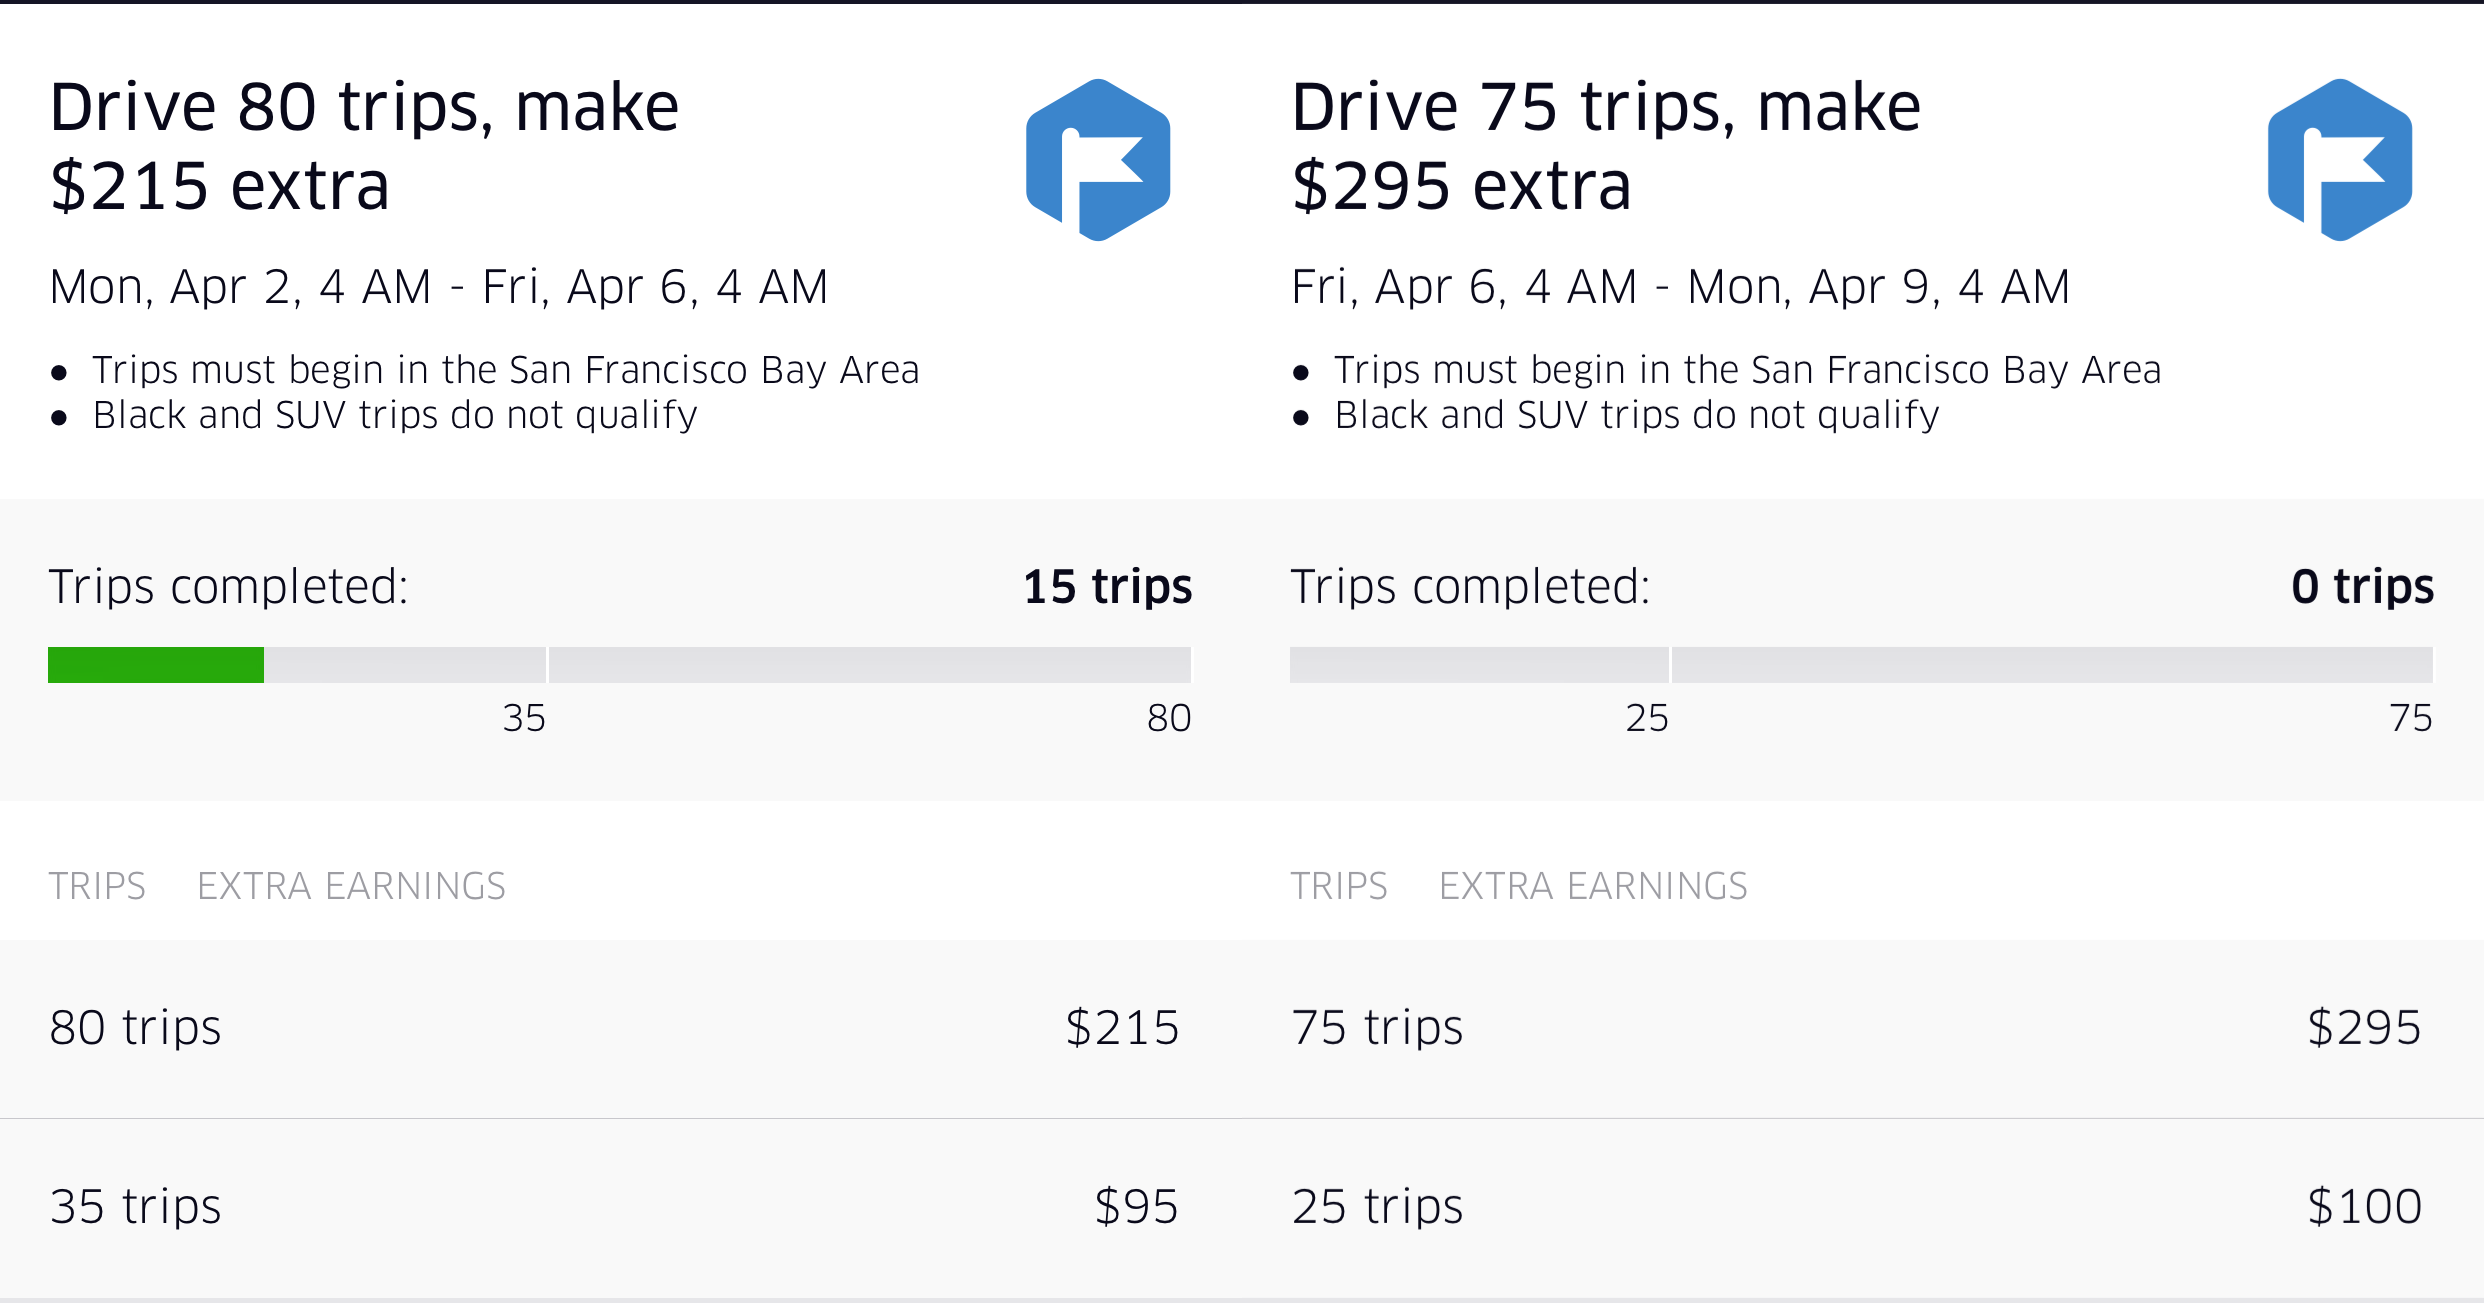 5 Tips To Maximize Your Uber And Lyft Earnings Six